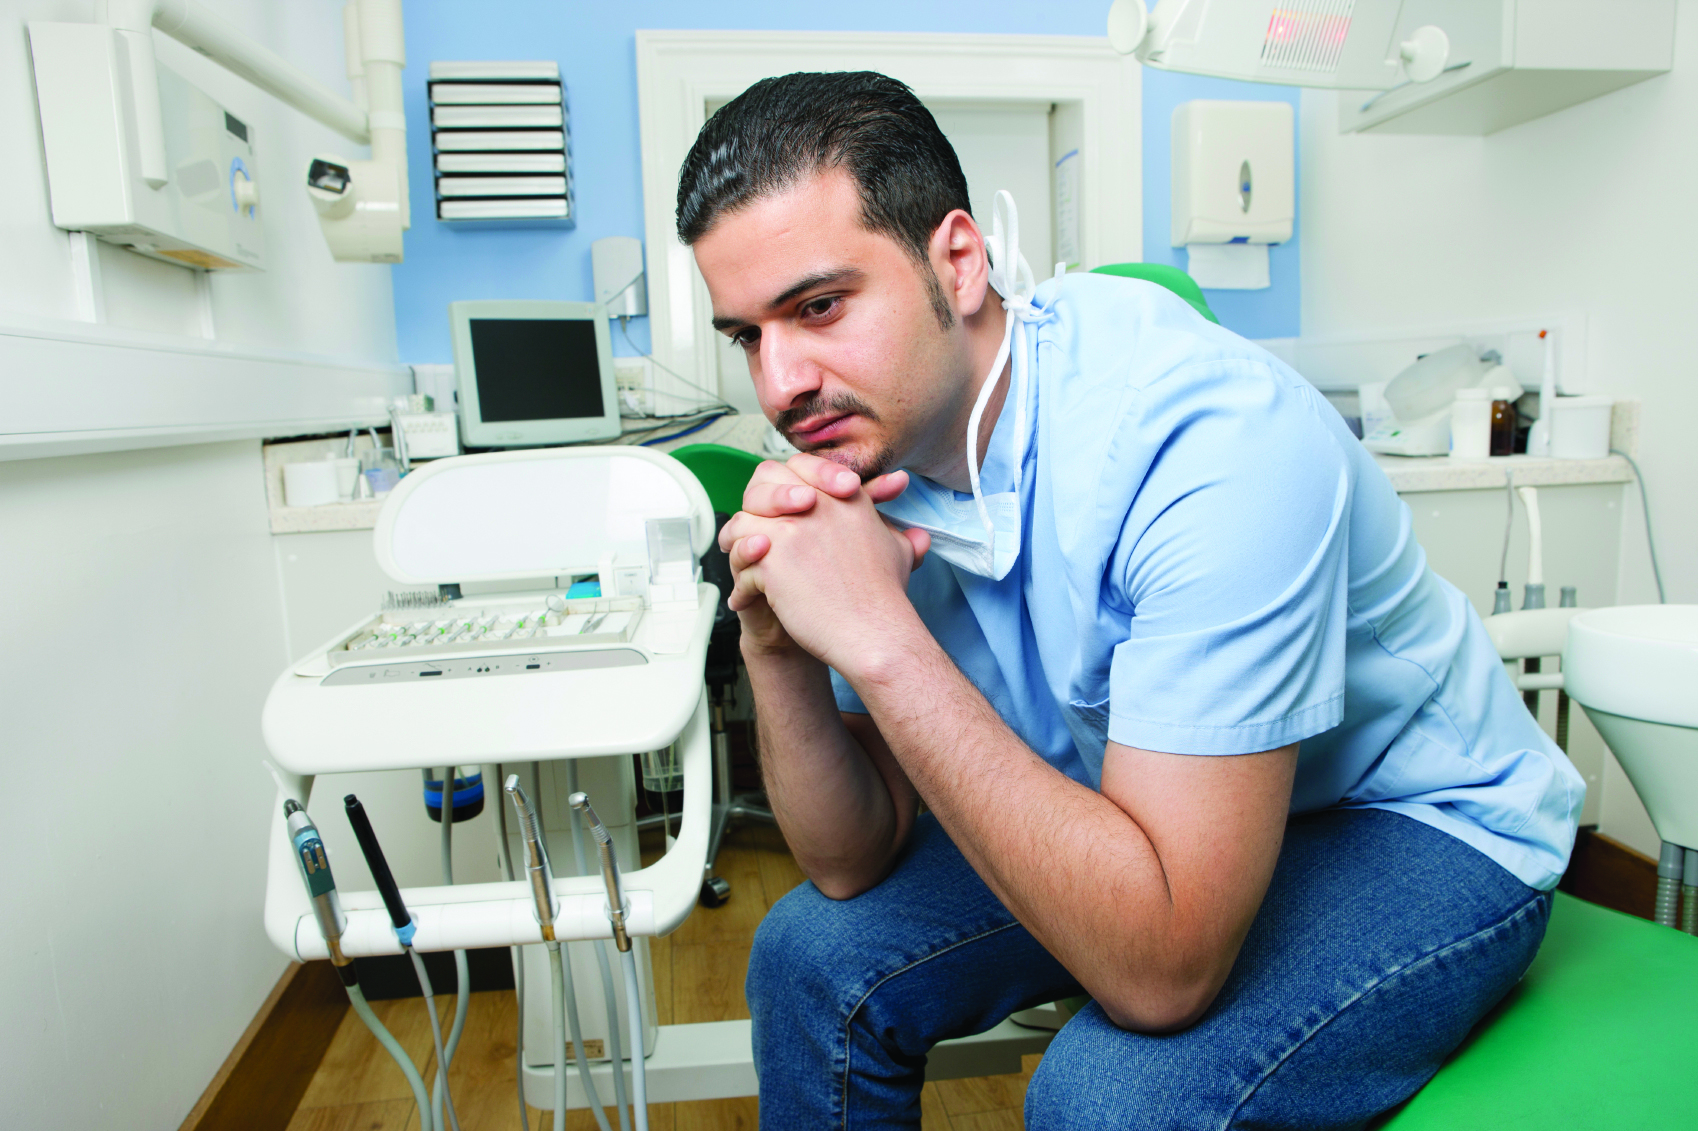 Stress in Dentistry: Why is Owning a Dental Practice So Stressful? - MGE